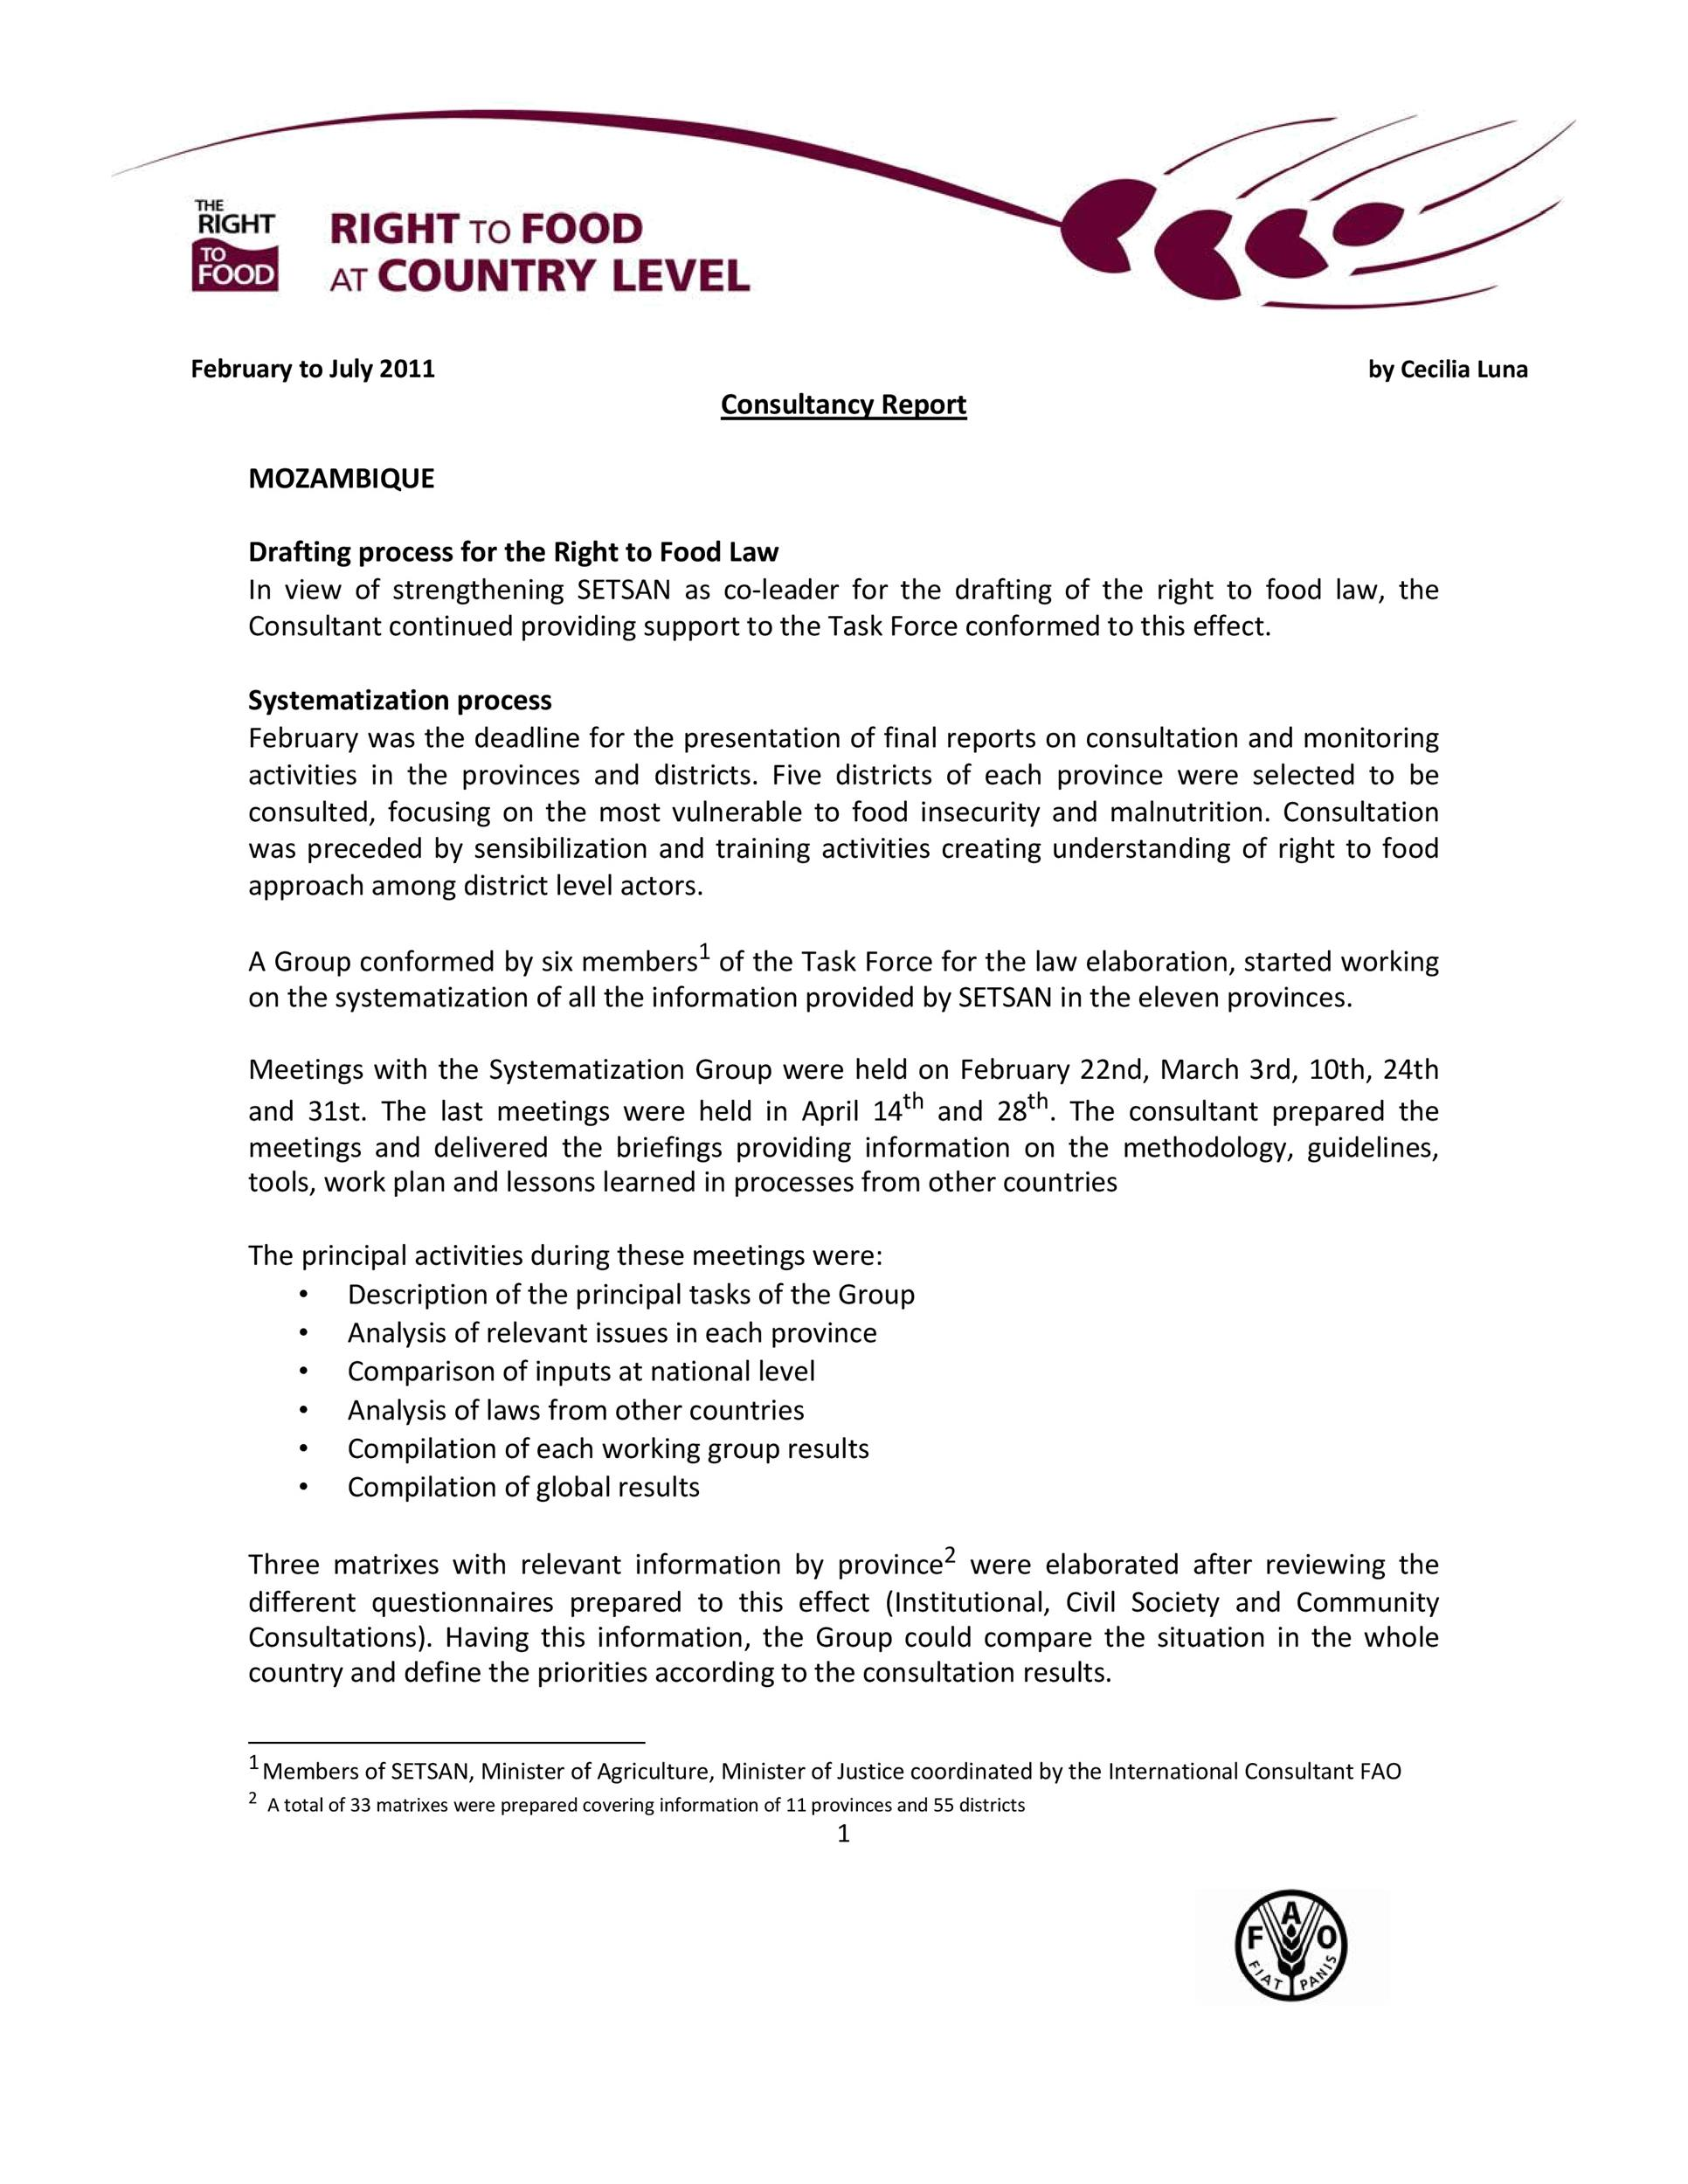 Healthcare Consulting Cover Letter from templatelab.com